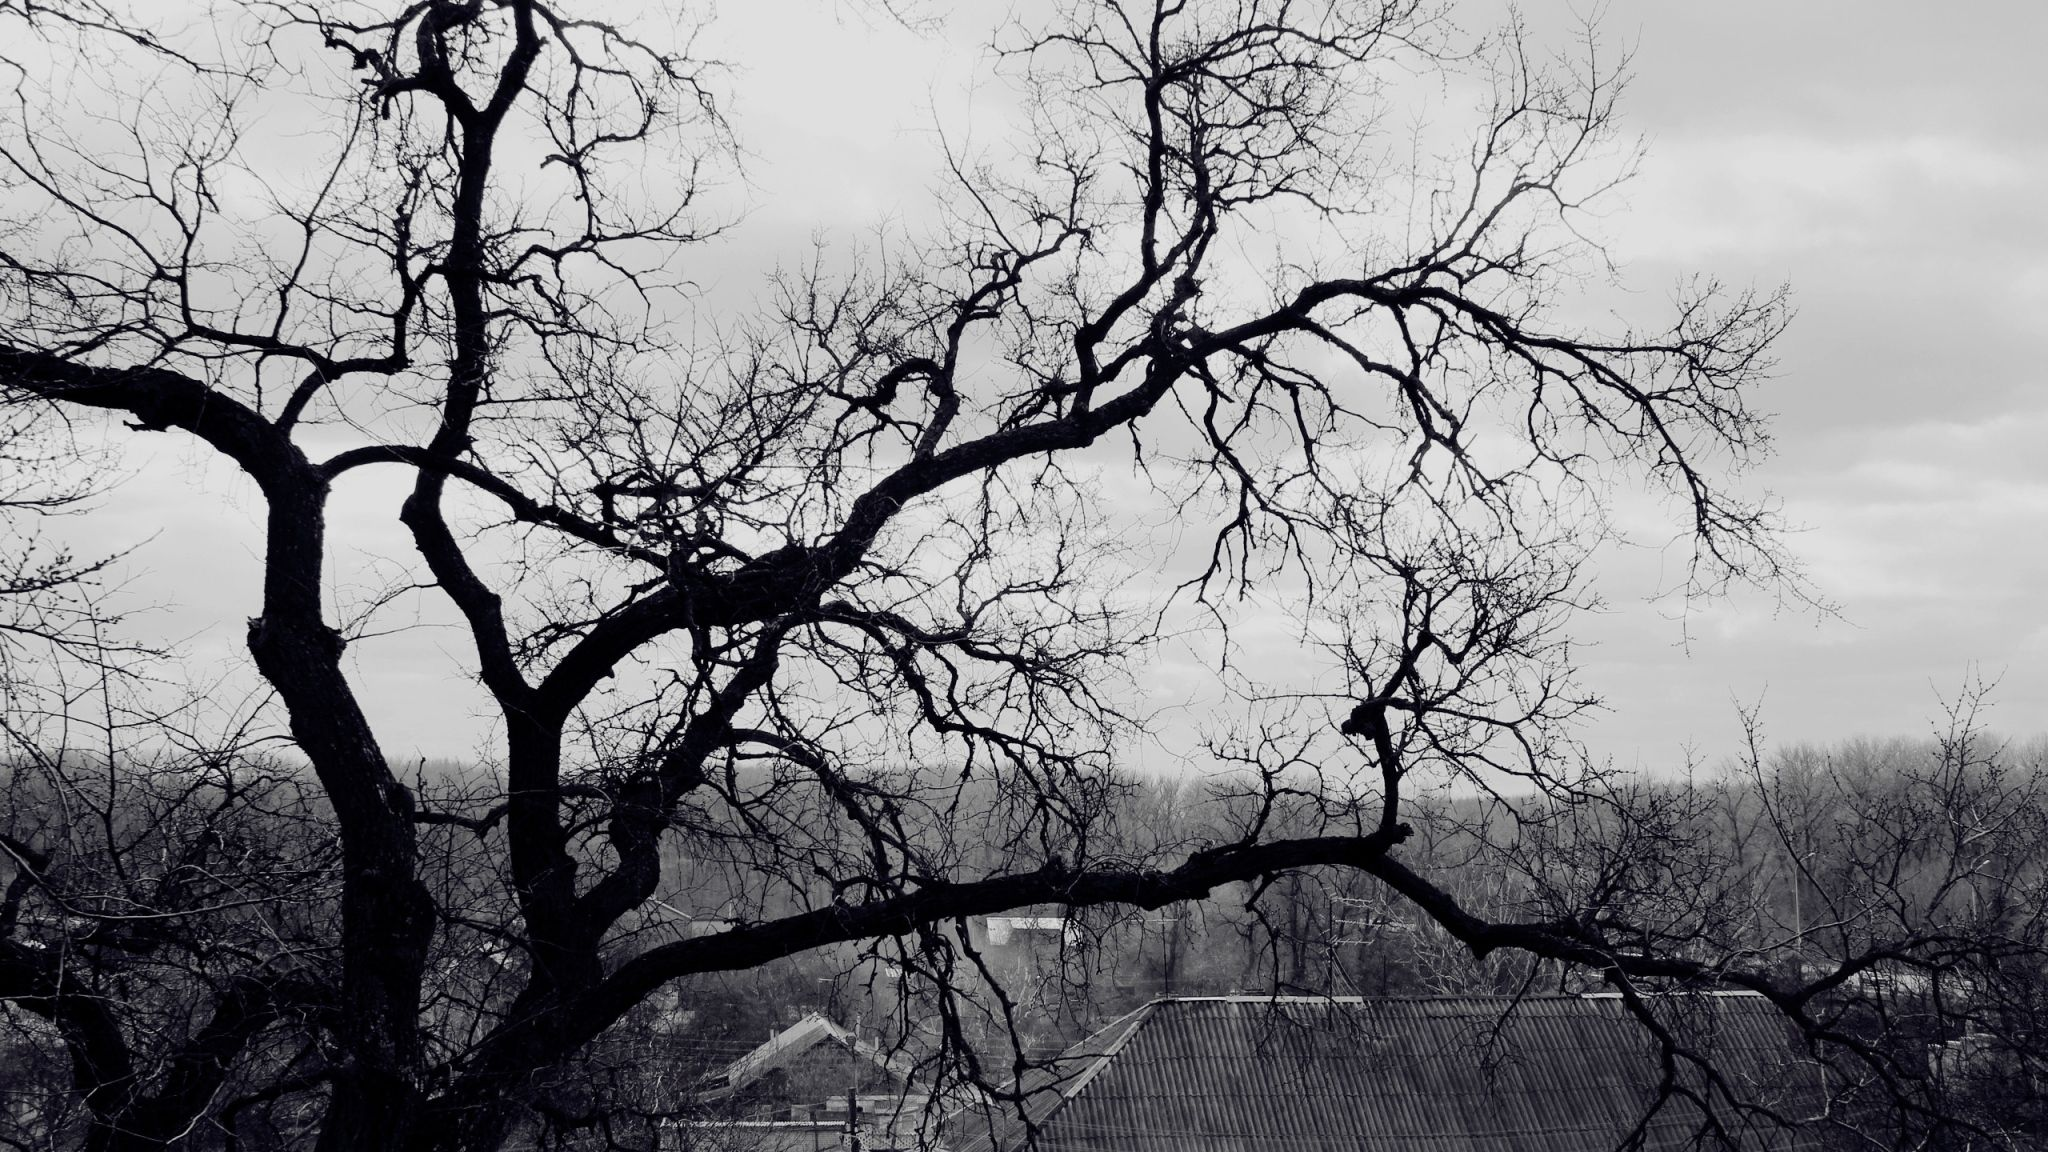 Download Wallpaper 2048x1152 Tree Branches Black And White